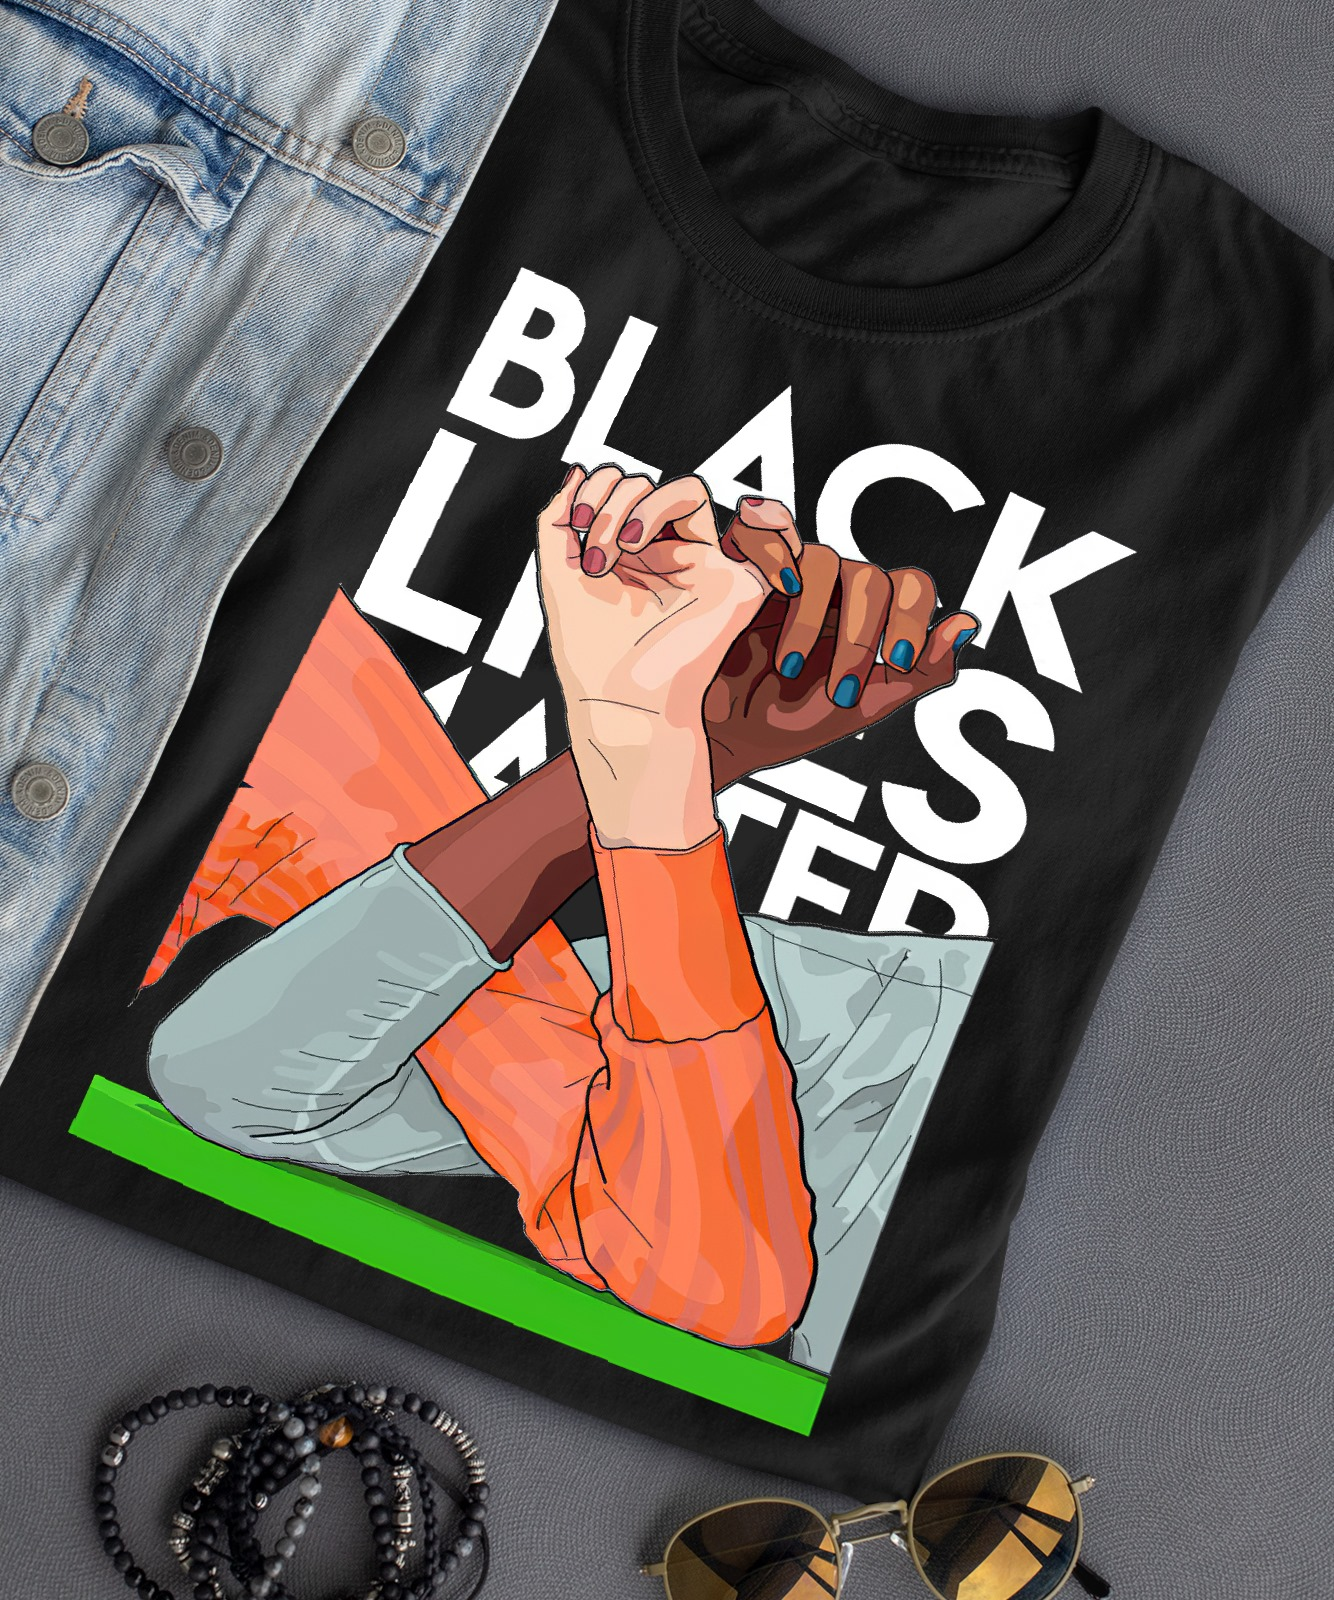 Wakanda Forever black lives matter shirt 4 Picturestees Clothing - T Shirt Printing on Demand